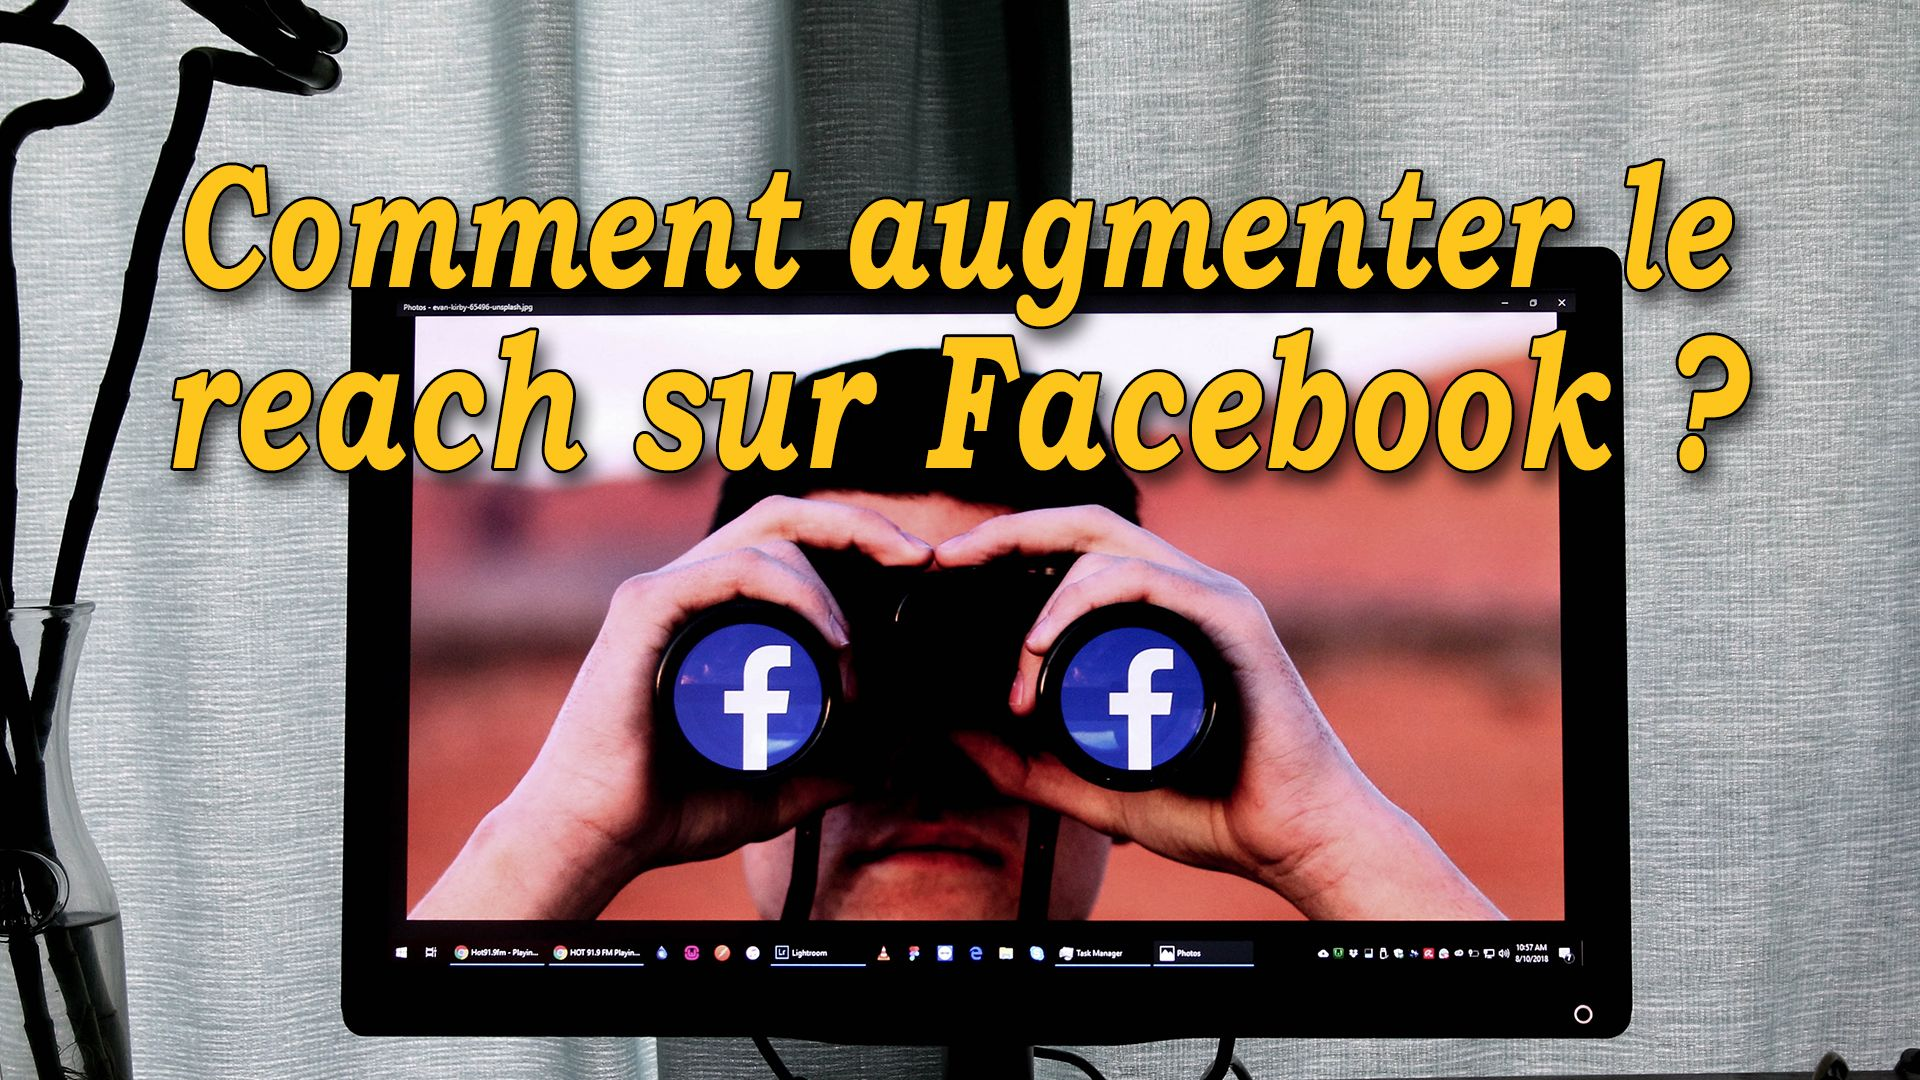 Comment augmenter le reach sur Facebook ? #GrowthHacking #WebMarketing #FormationGrowthHacking #CentreDeFormationFrance #TunnelAARRR #AARRR #SocialMedia #CommunityManagement #SEO #FacebookAds #Facebook